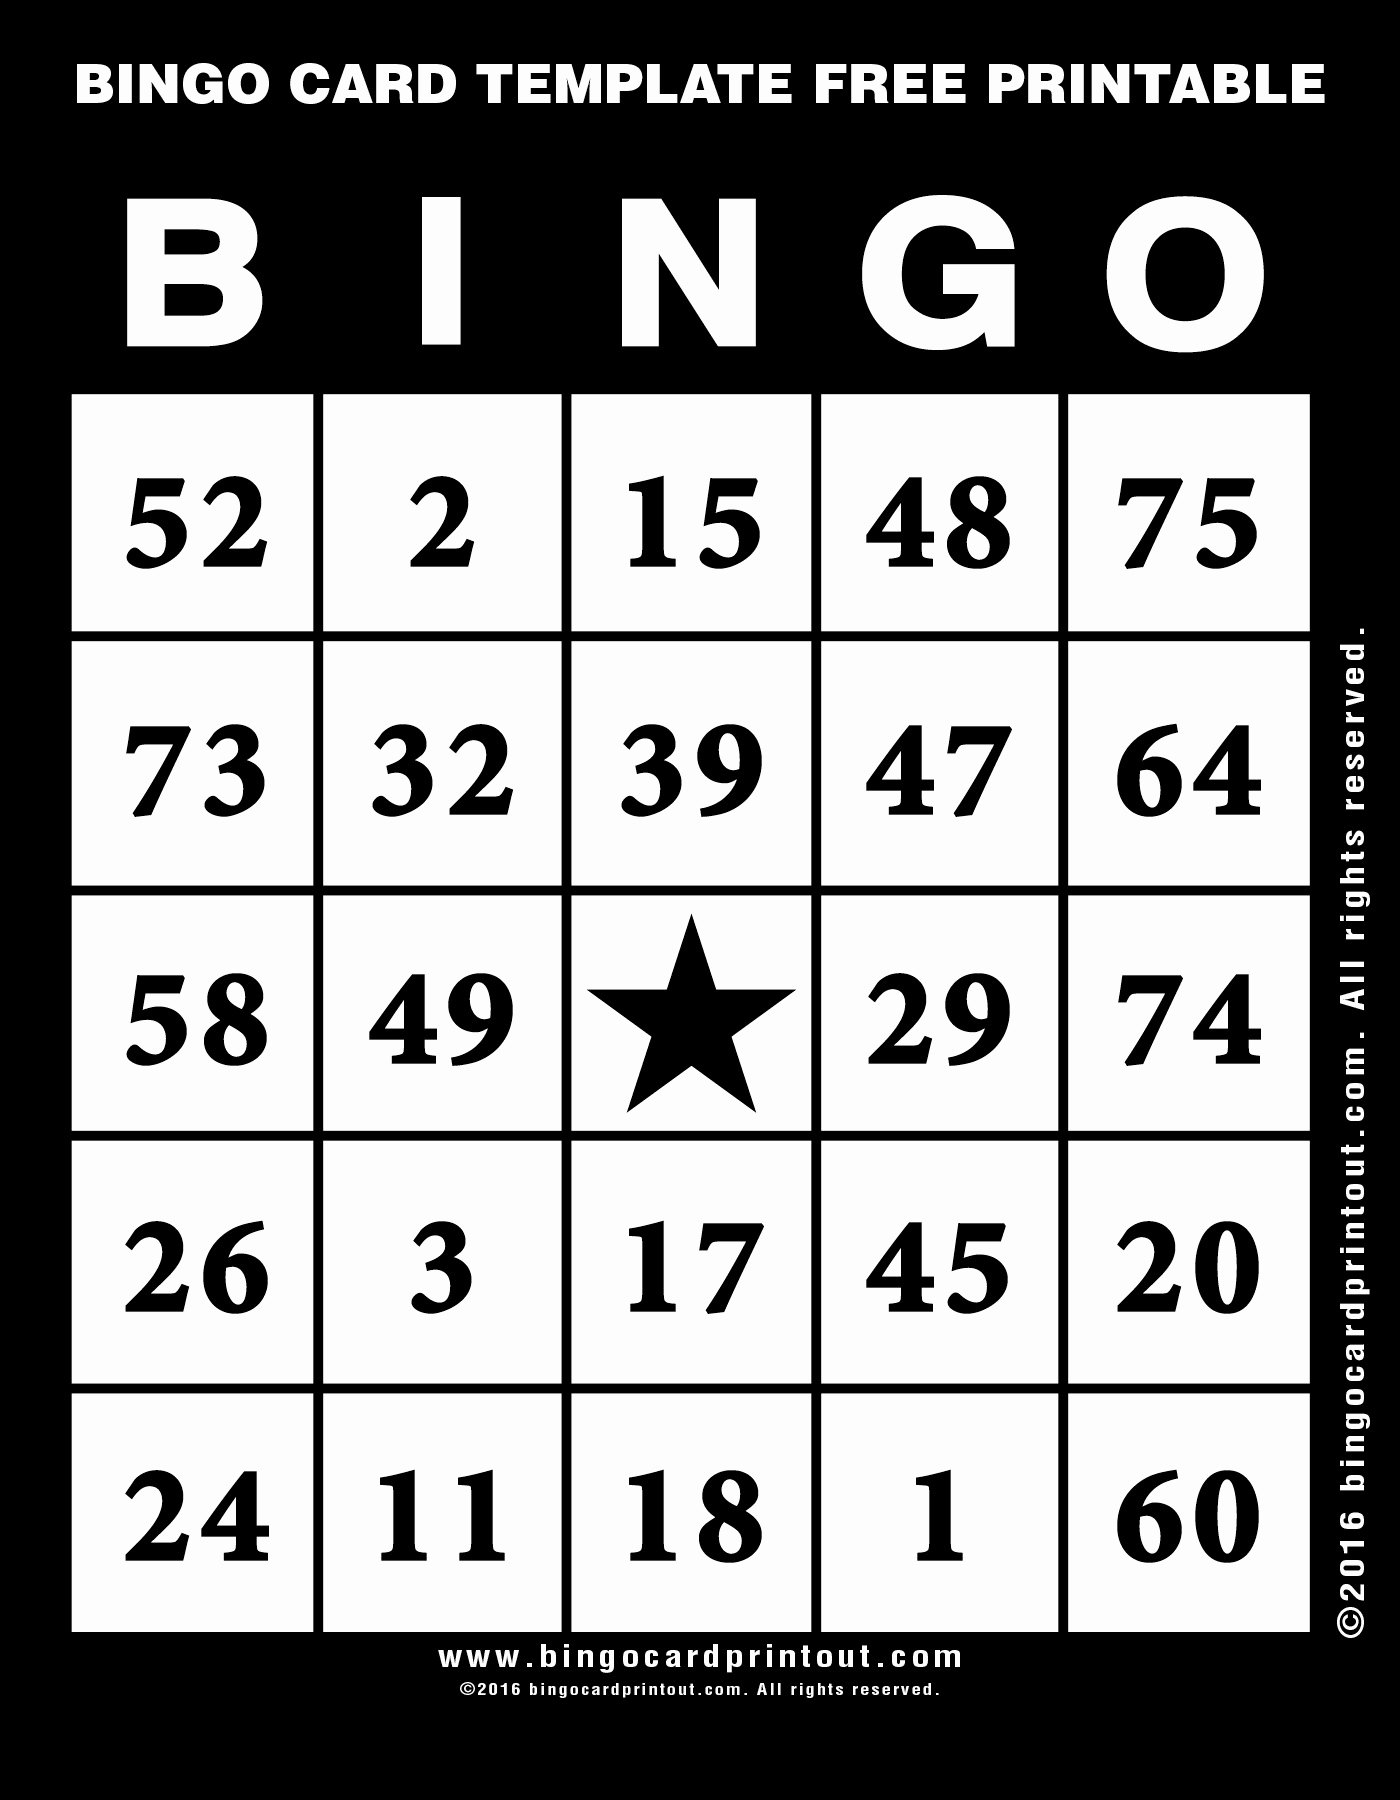 Bingo Card Template Free Printable Bingocardprintout